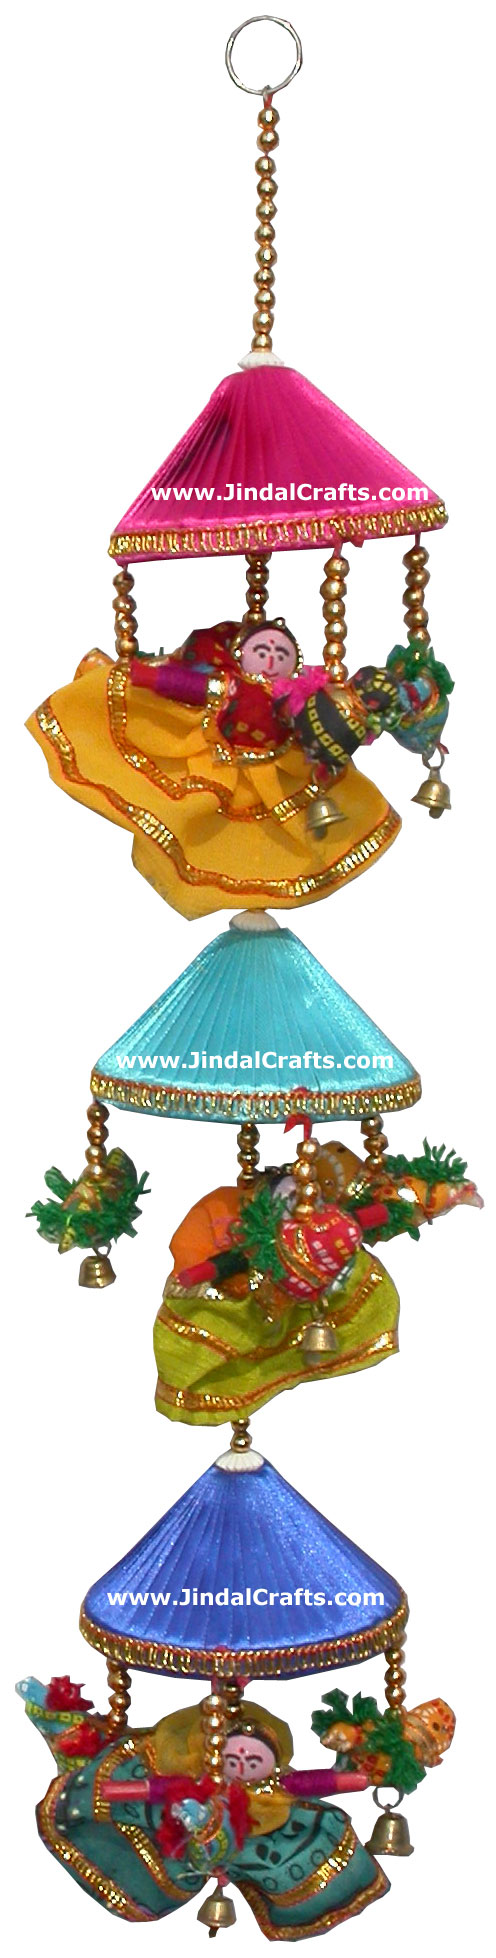 Dolls Hanging Home Decoration India Handicrafts Crafts